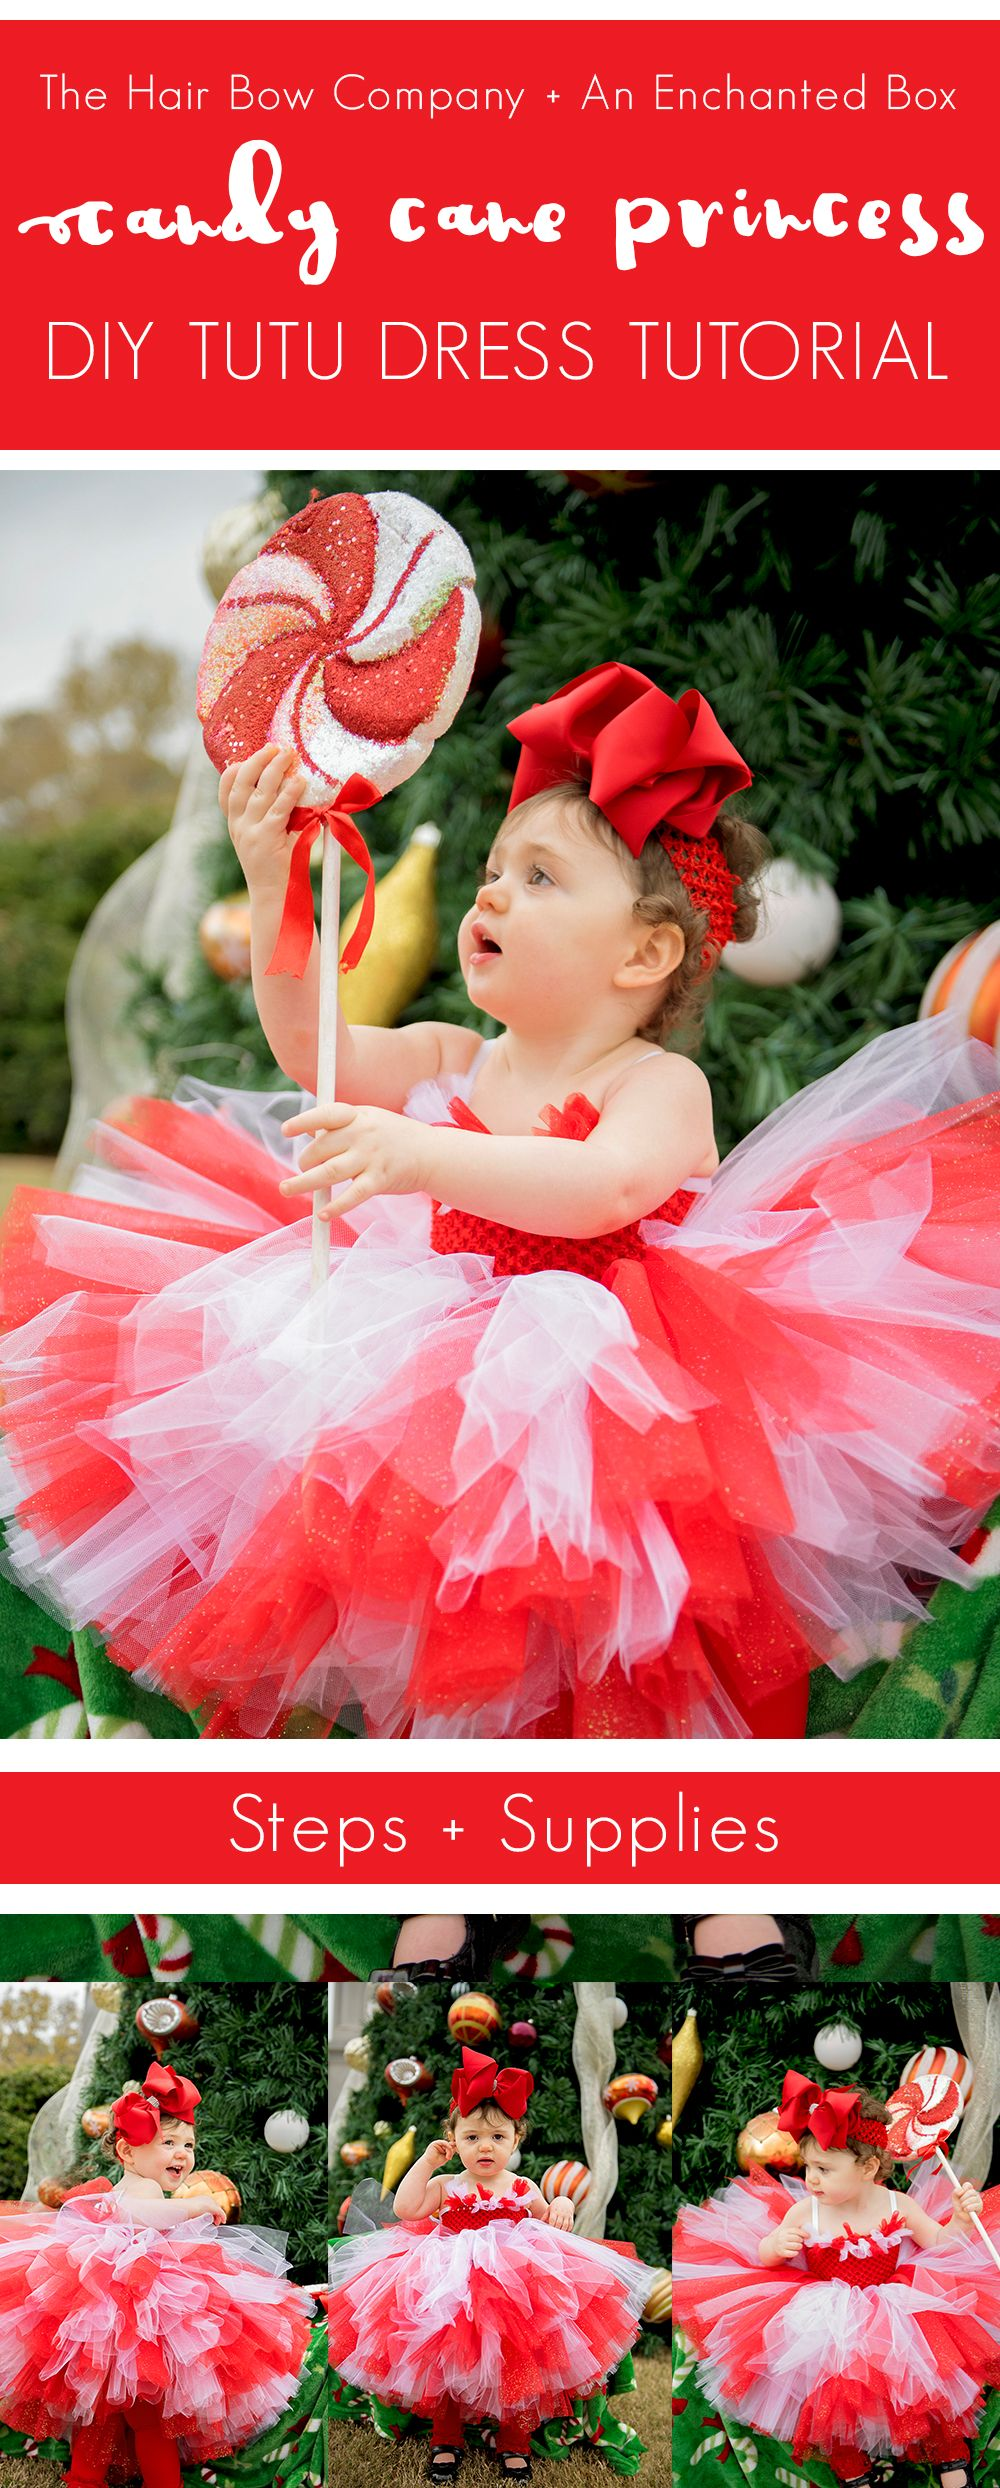 339b789706 Caitlin from An Enchanted Box on Etsy has created another darling tutu dress  for us and is back on the blog this week! This Candy Cane Princess Tutu  Dress ...